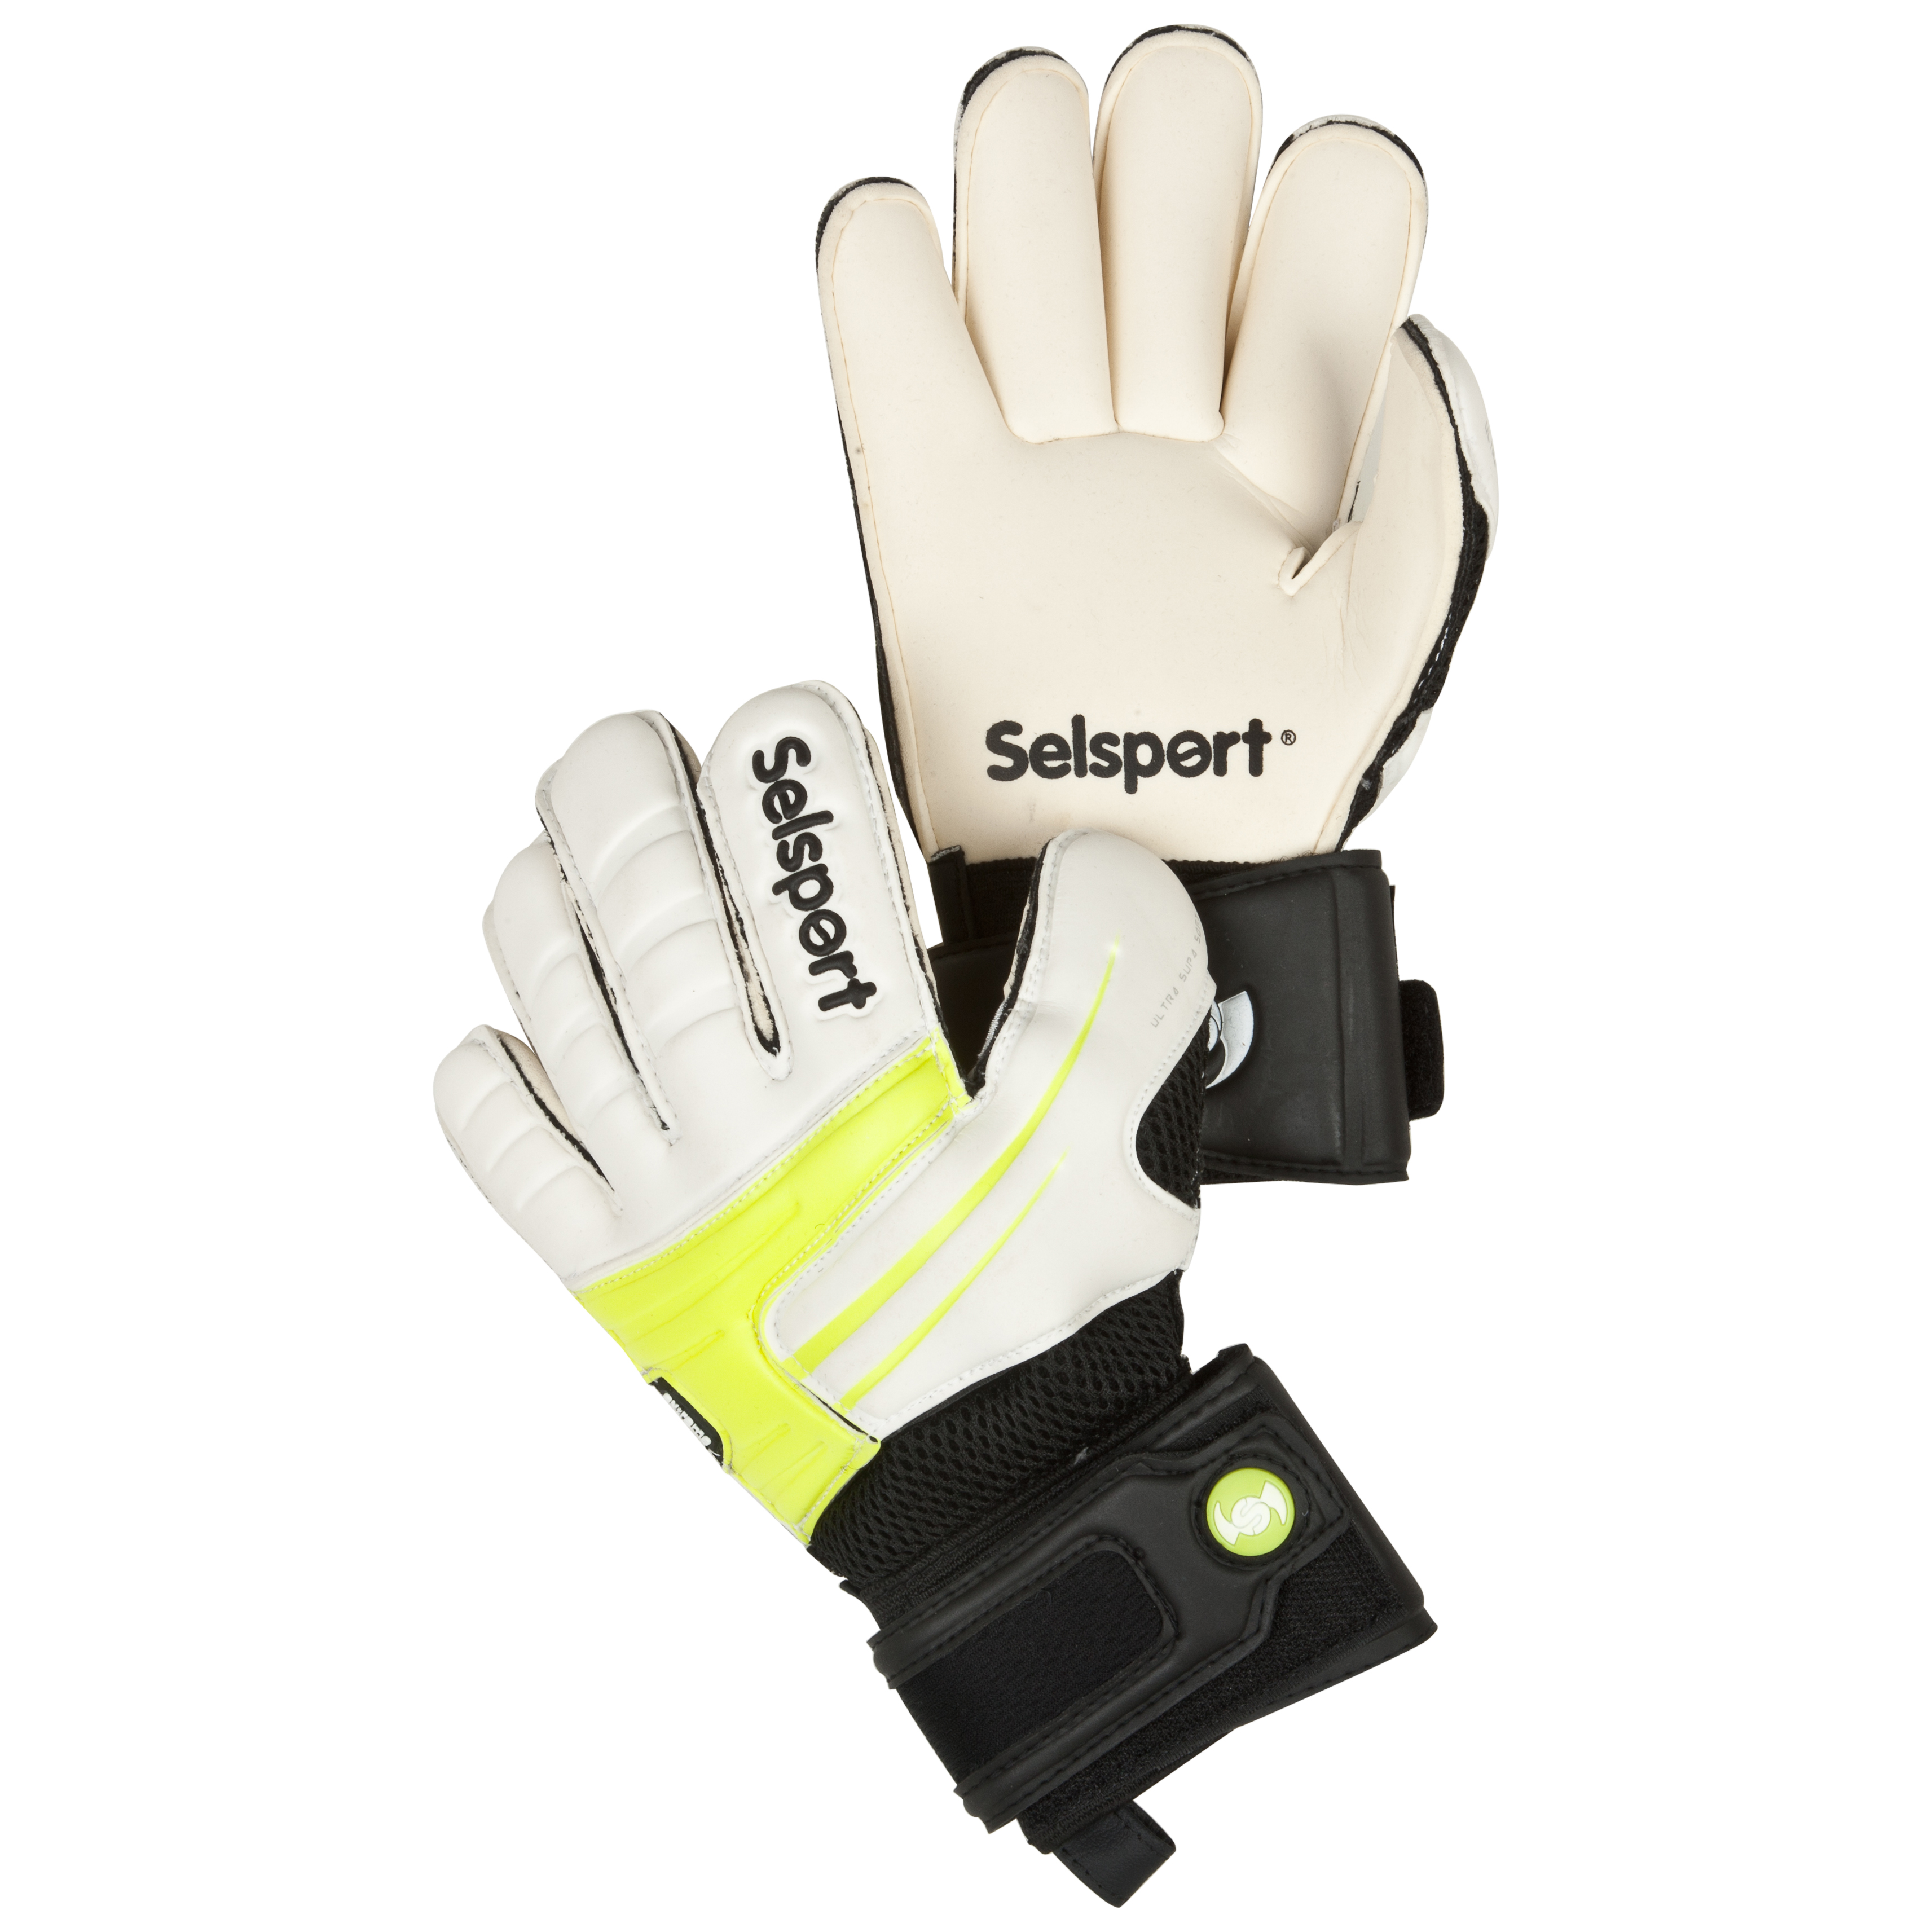 Selsport Extreme 6 Goalkeeper Gloves - Kids-Lime